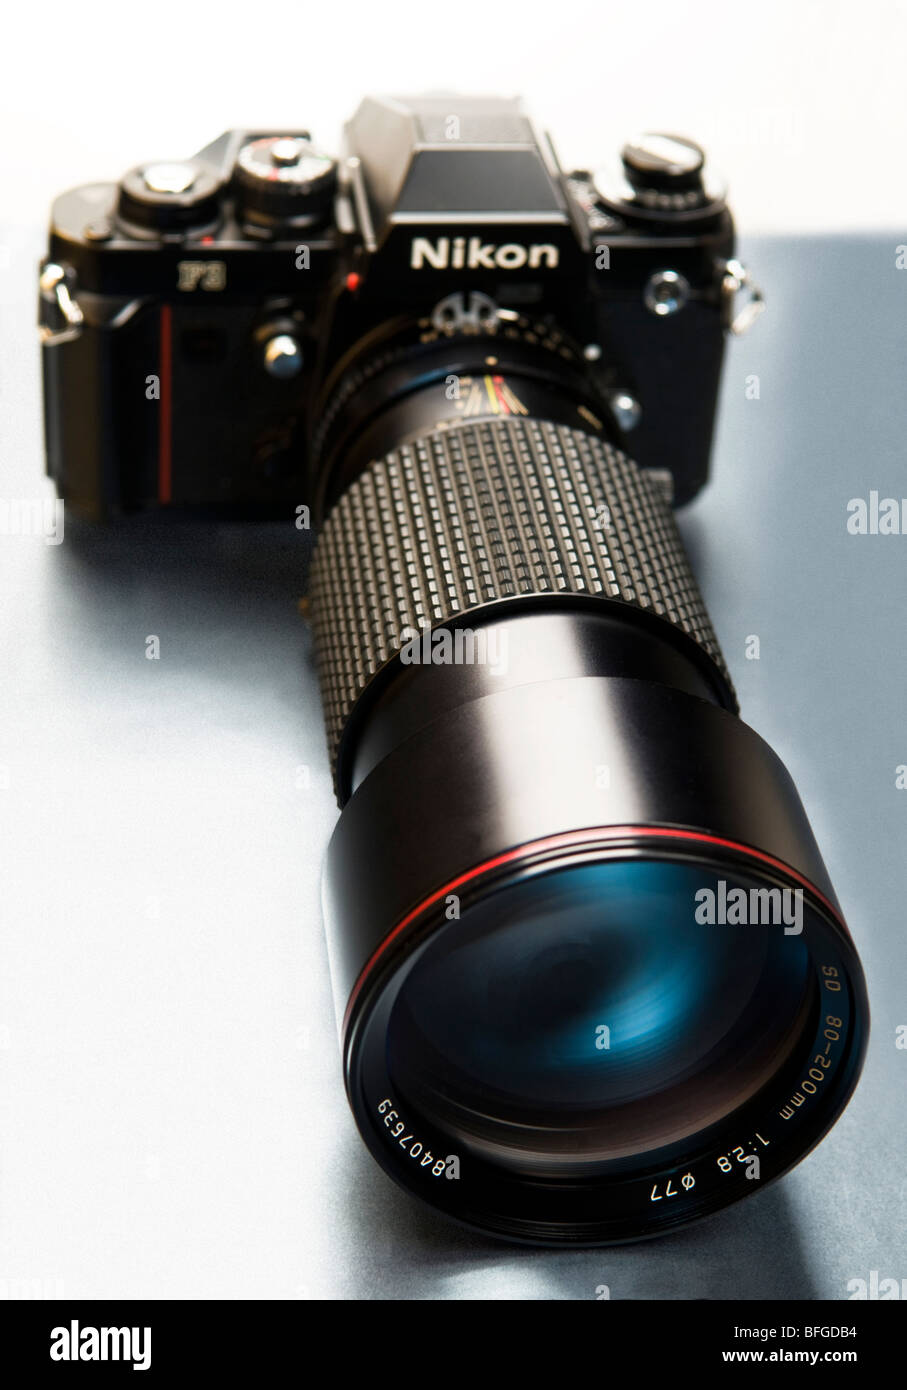 An artistic view of a Nikon F3 camera with a long lens attached. - Stock Image